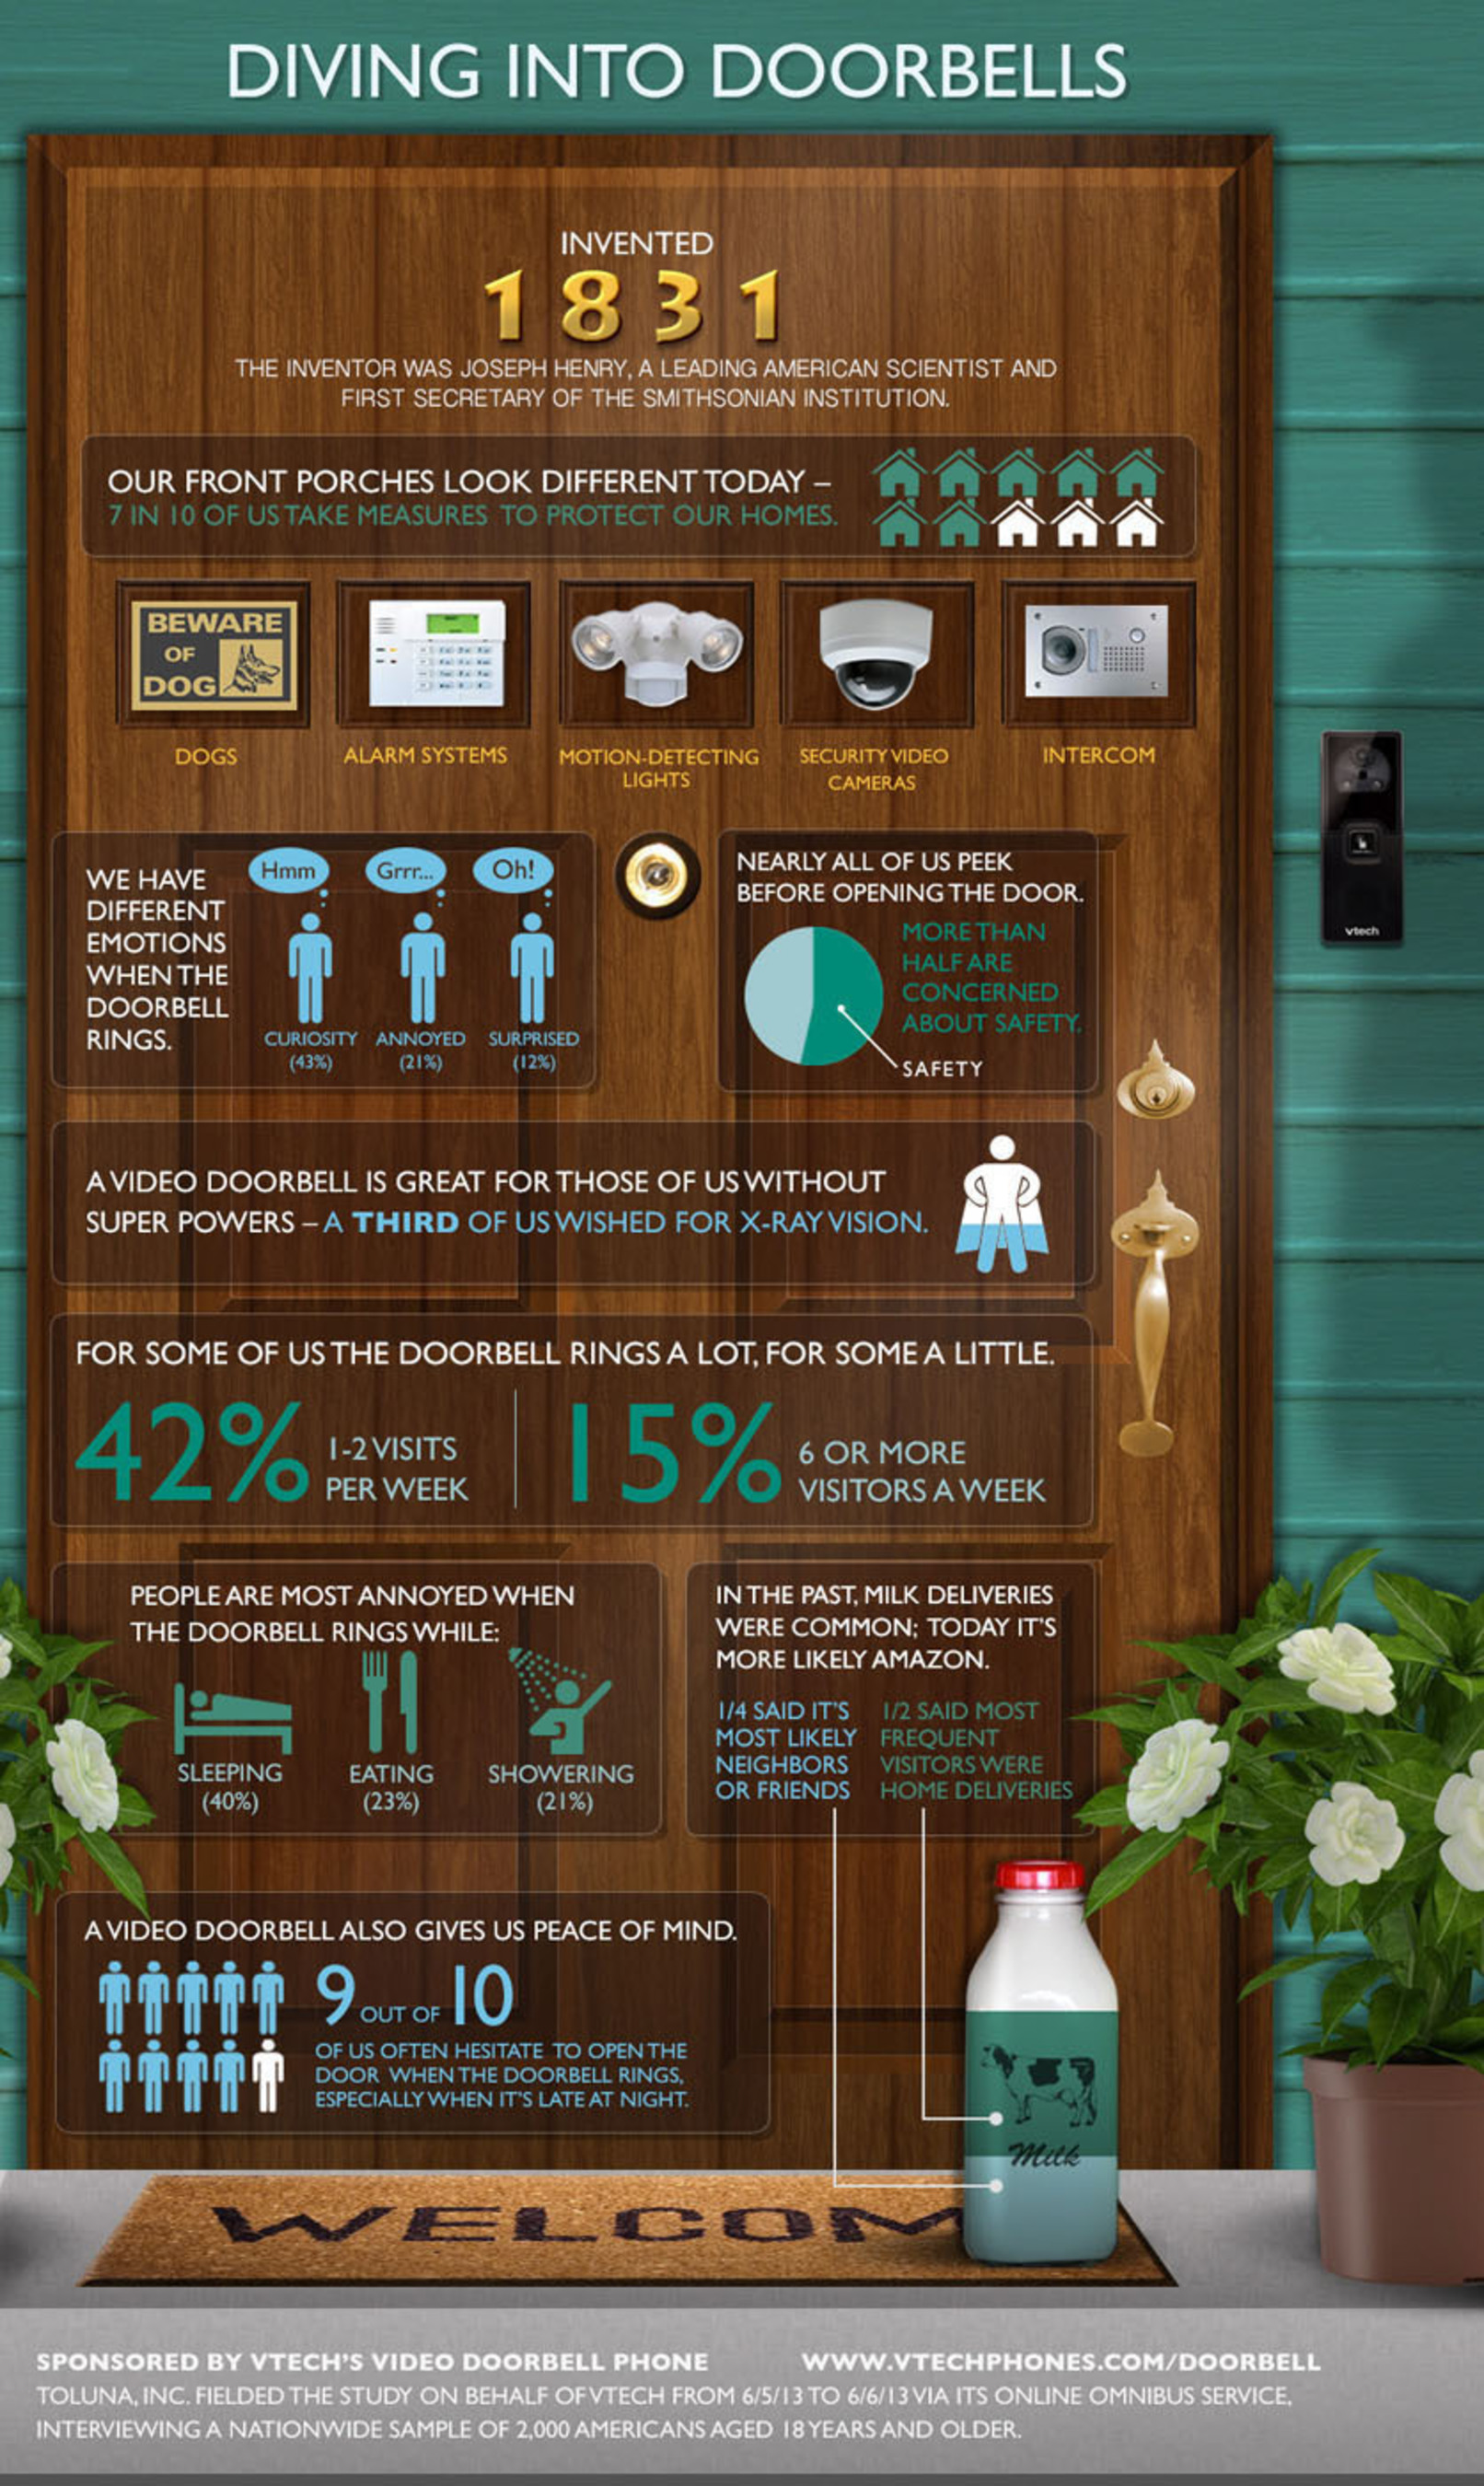 Since the invention of the doorbell in 1831, Americans have had strong and individual reactions to hearing them ring. This infographic dives into the details of those doorbell emotions and into technology we use to address our curiosity and concerns about the front porch.  (PRNewsFoto/VTech Communications, Inc.)